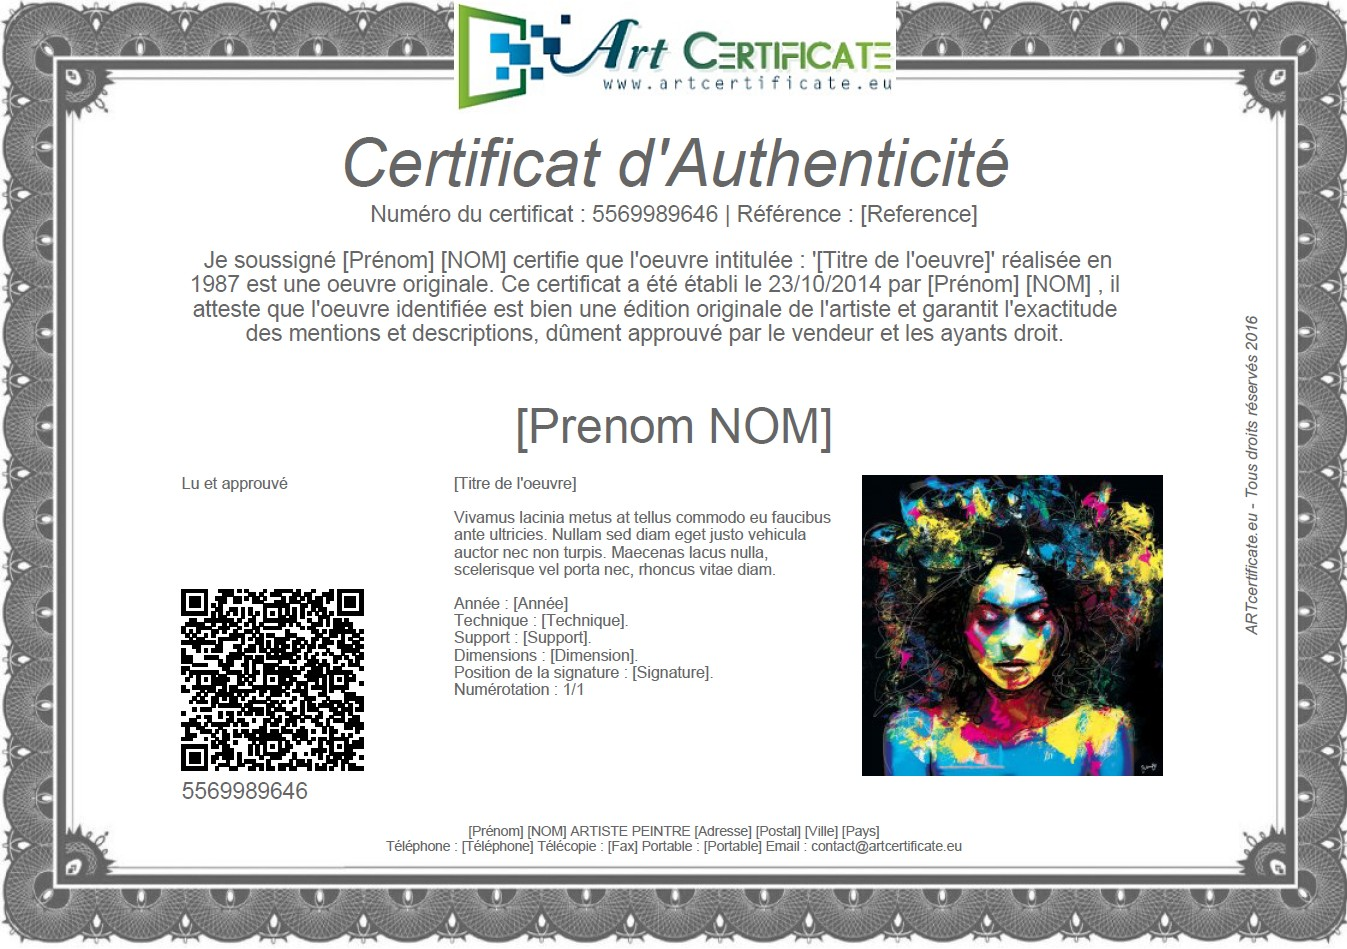 Comment cr er votre certificat d 39 authenticit certificat for Modele certificat de ramonage gratuit